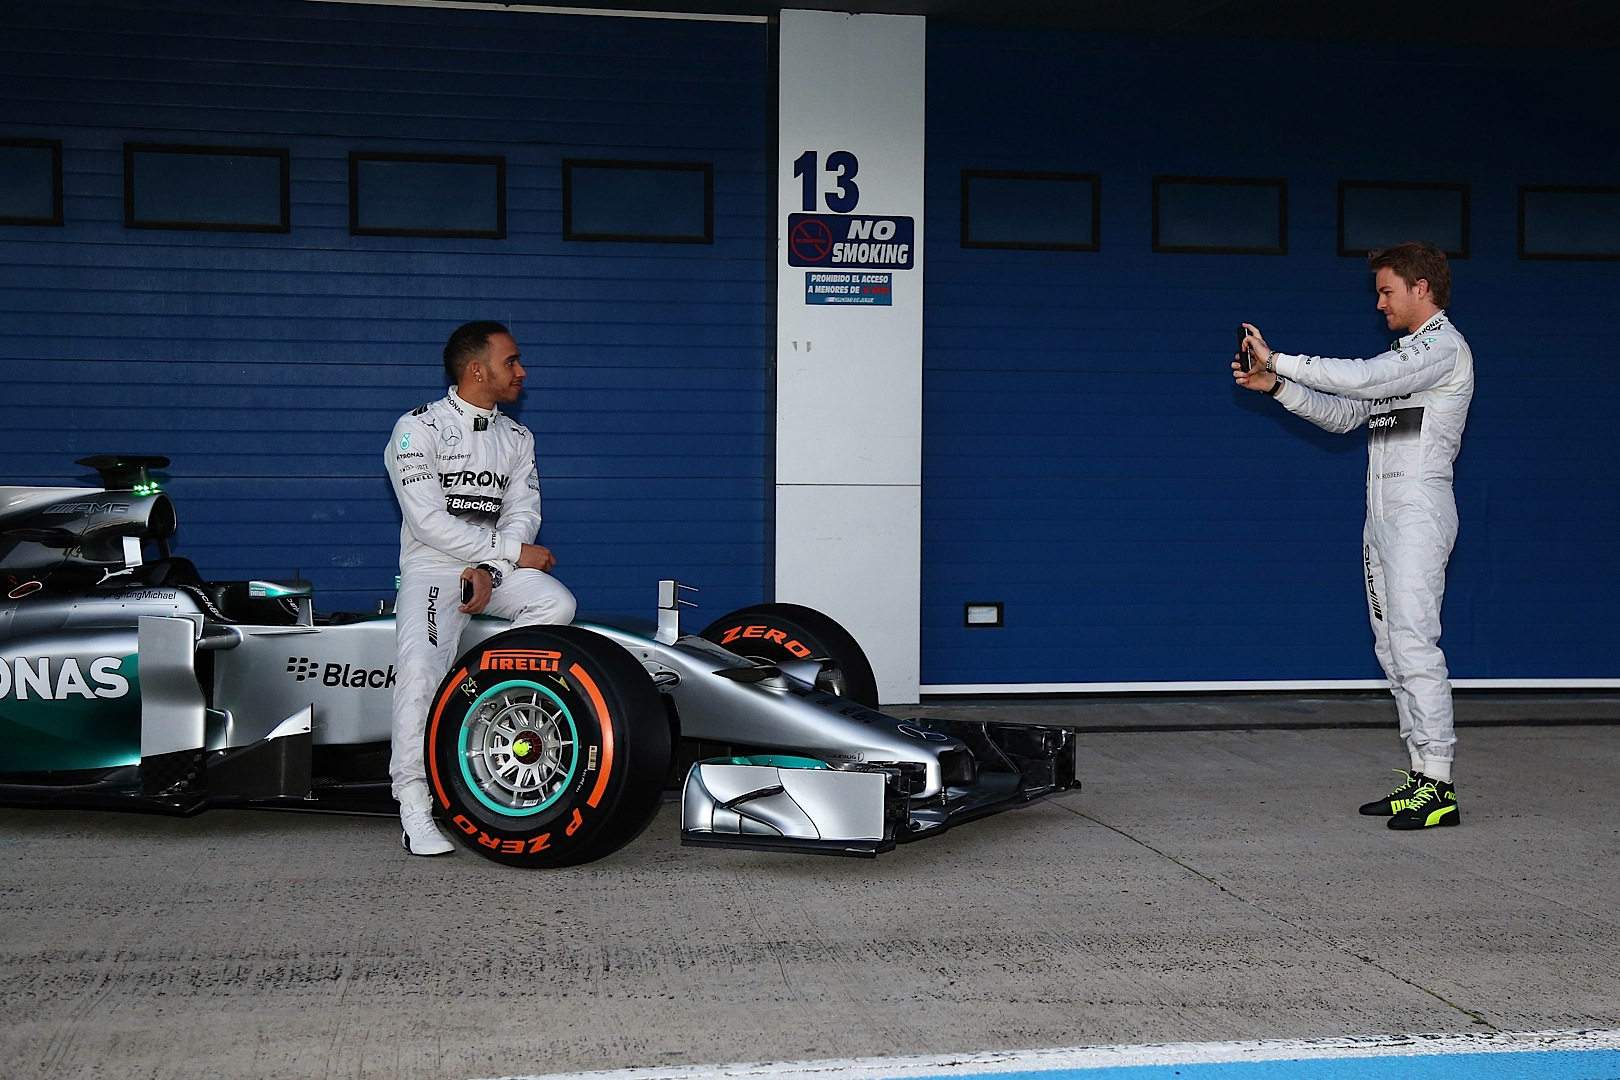 Mercedes Amg F1 Completes First Troubling Test Day At